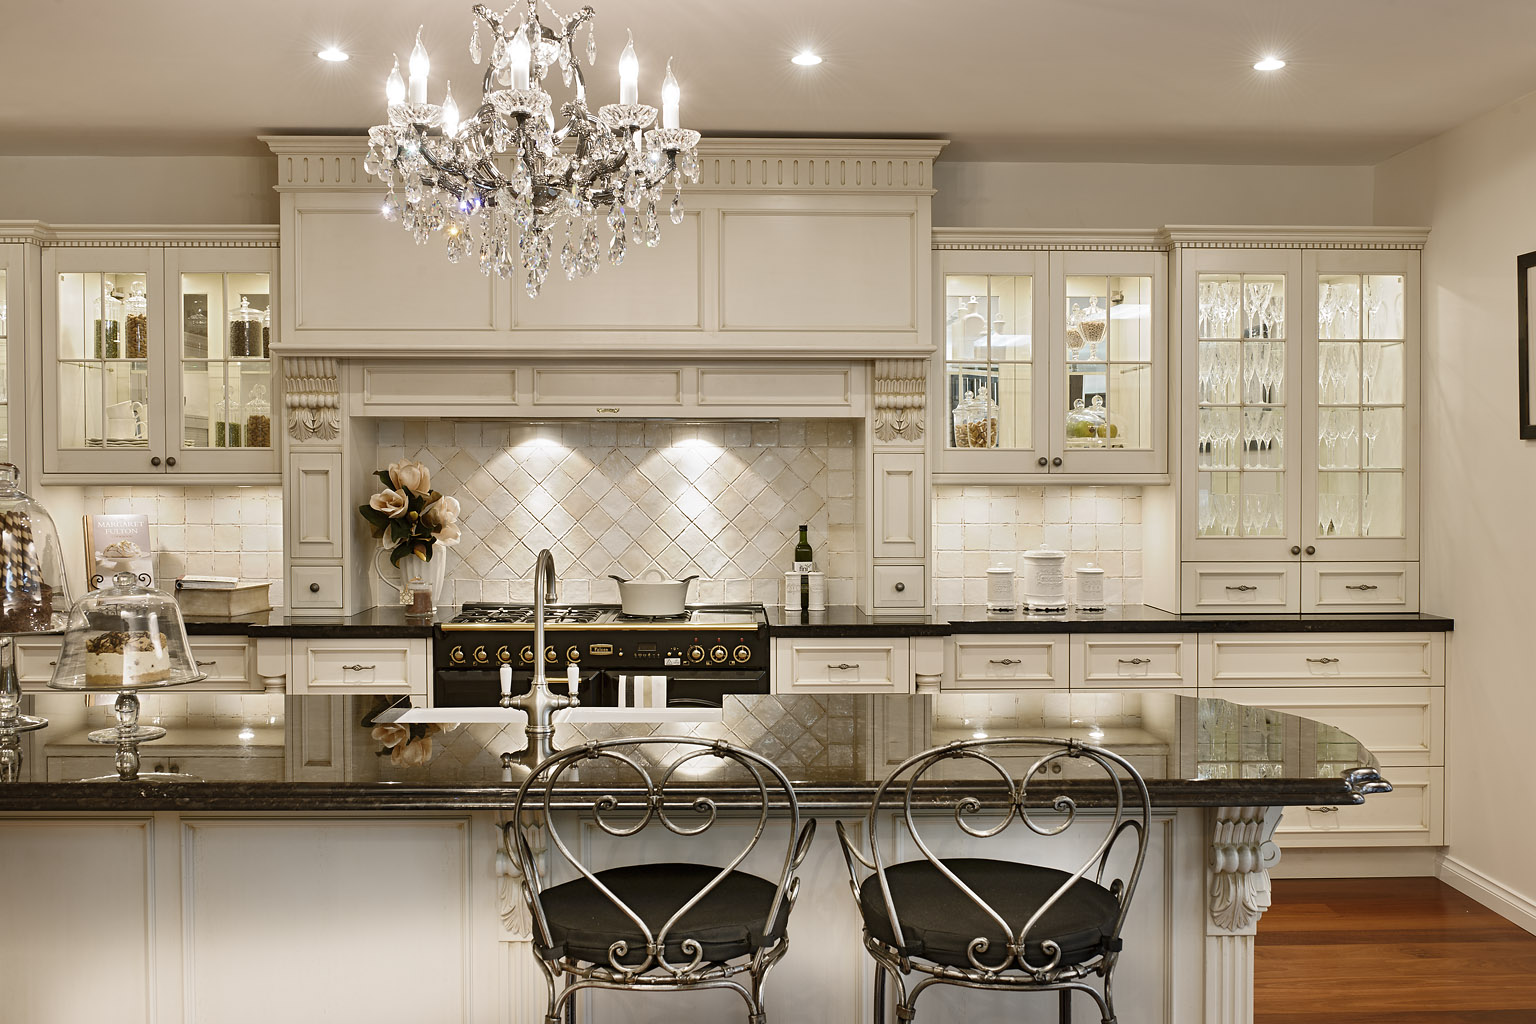 Elegant Crystal Chandelier above Classic Island and Classic Metal Stools for Country Kitchen Ideas